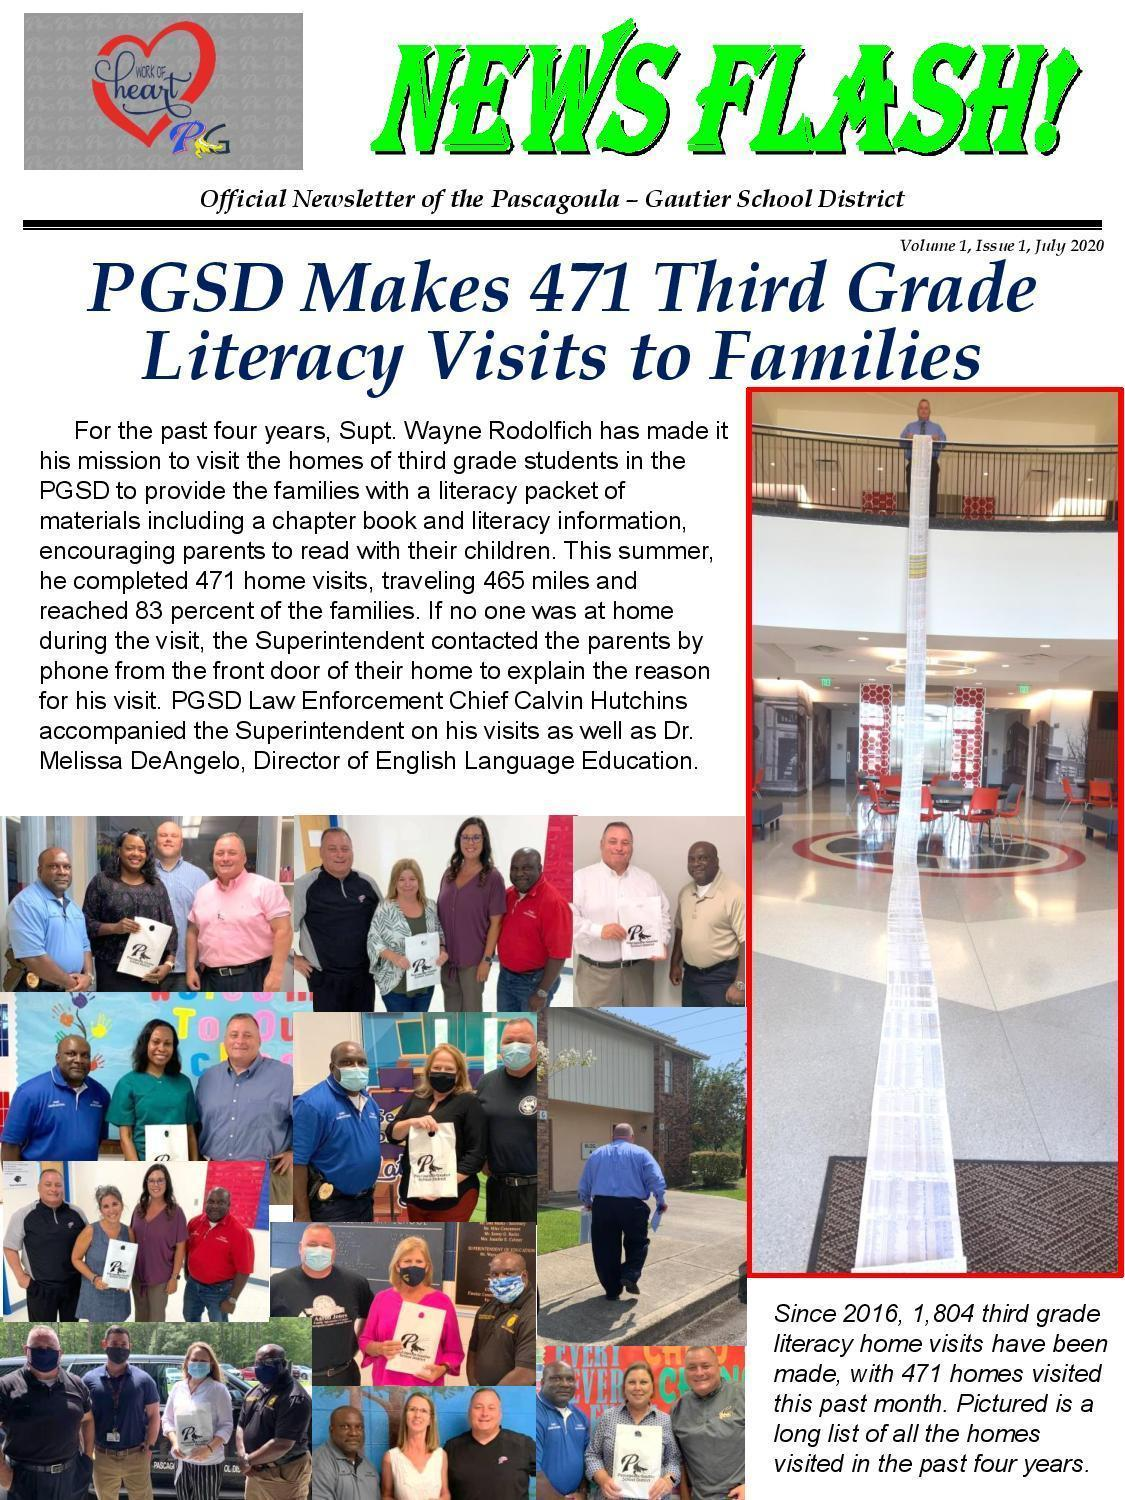 Vol. 1, Issue 1  Literacy Visits